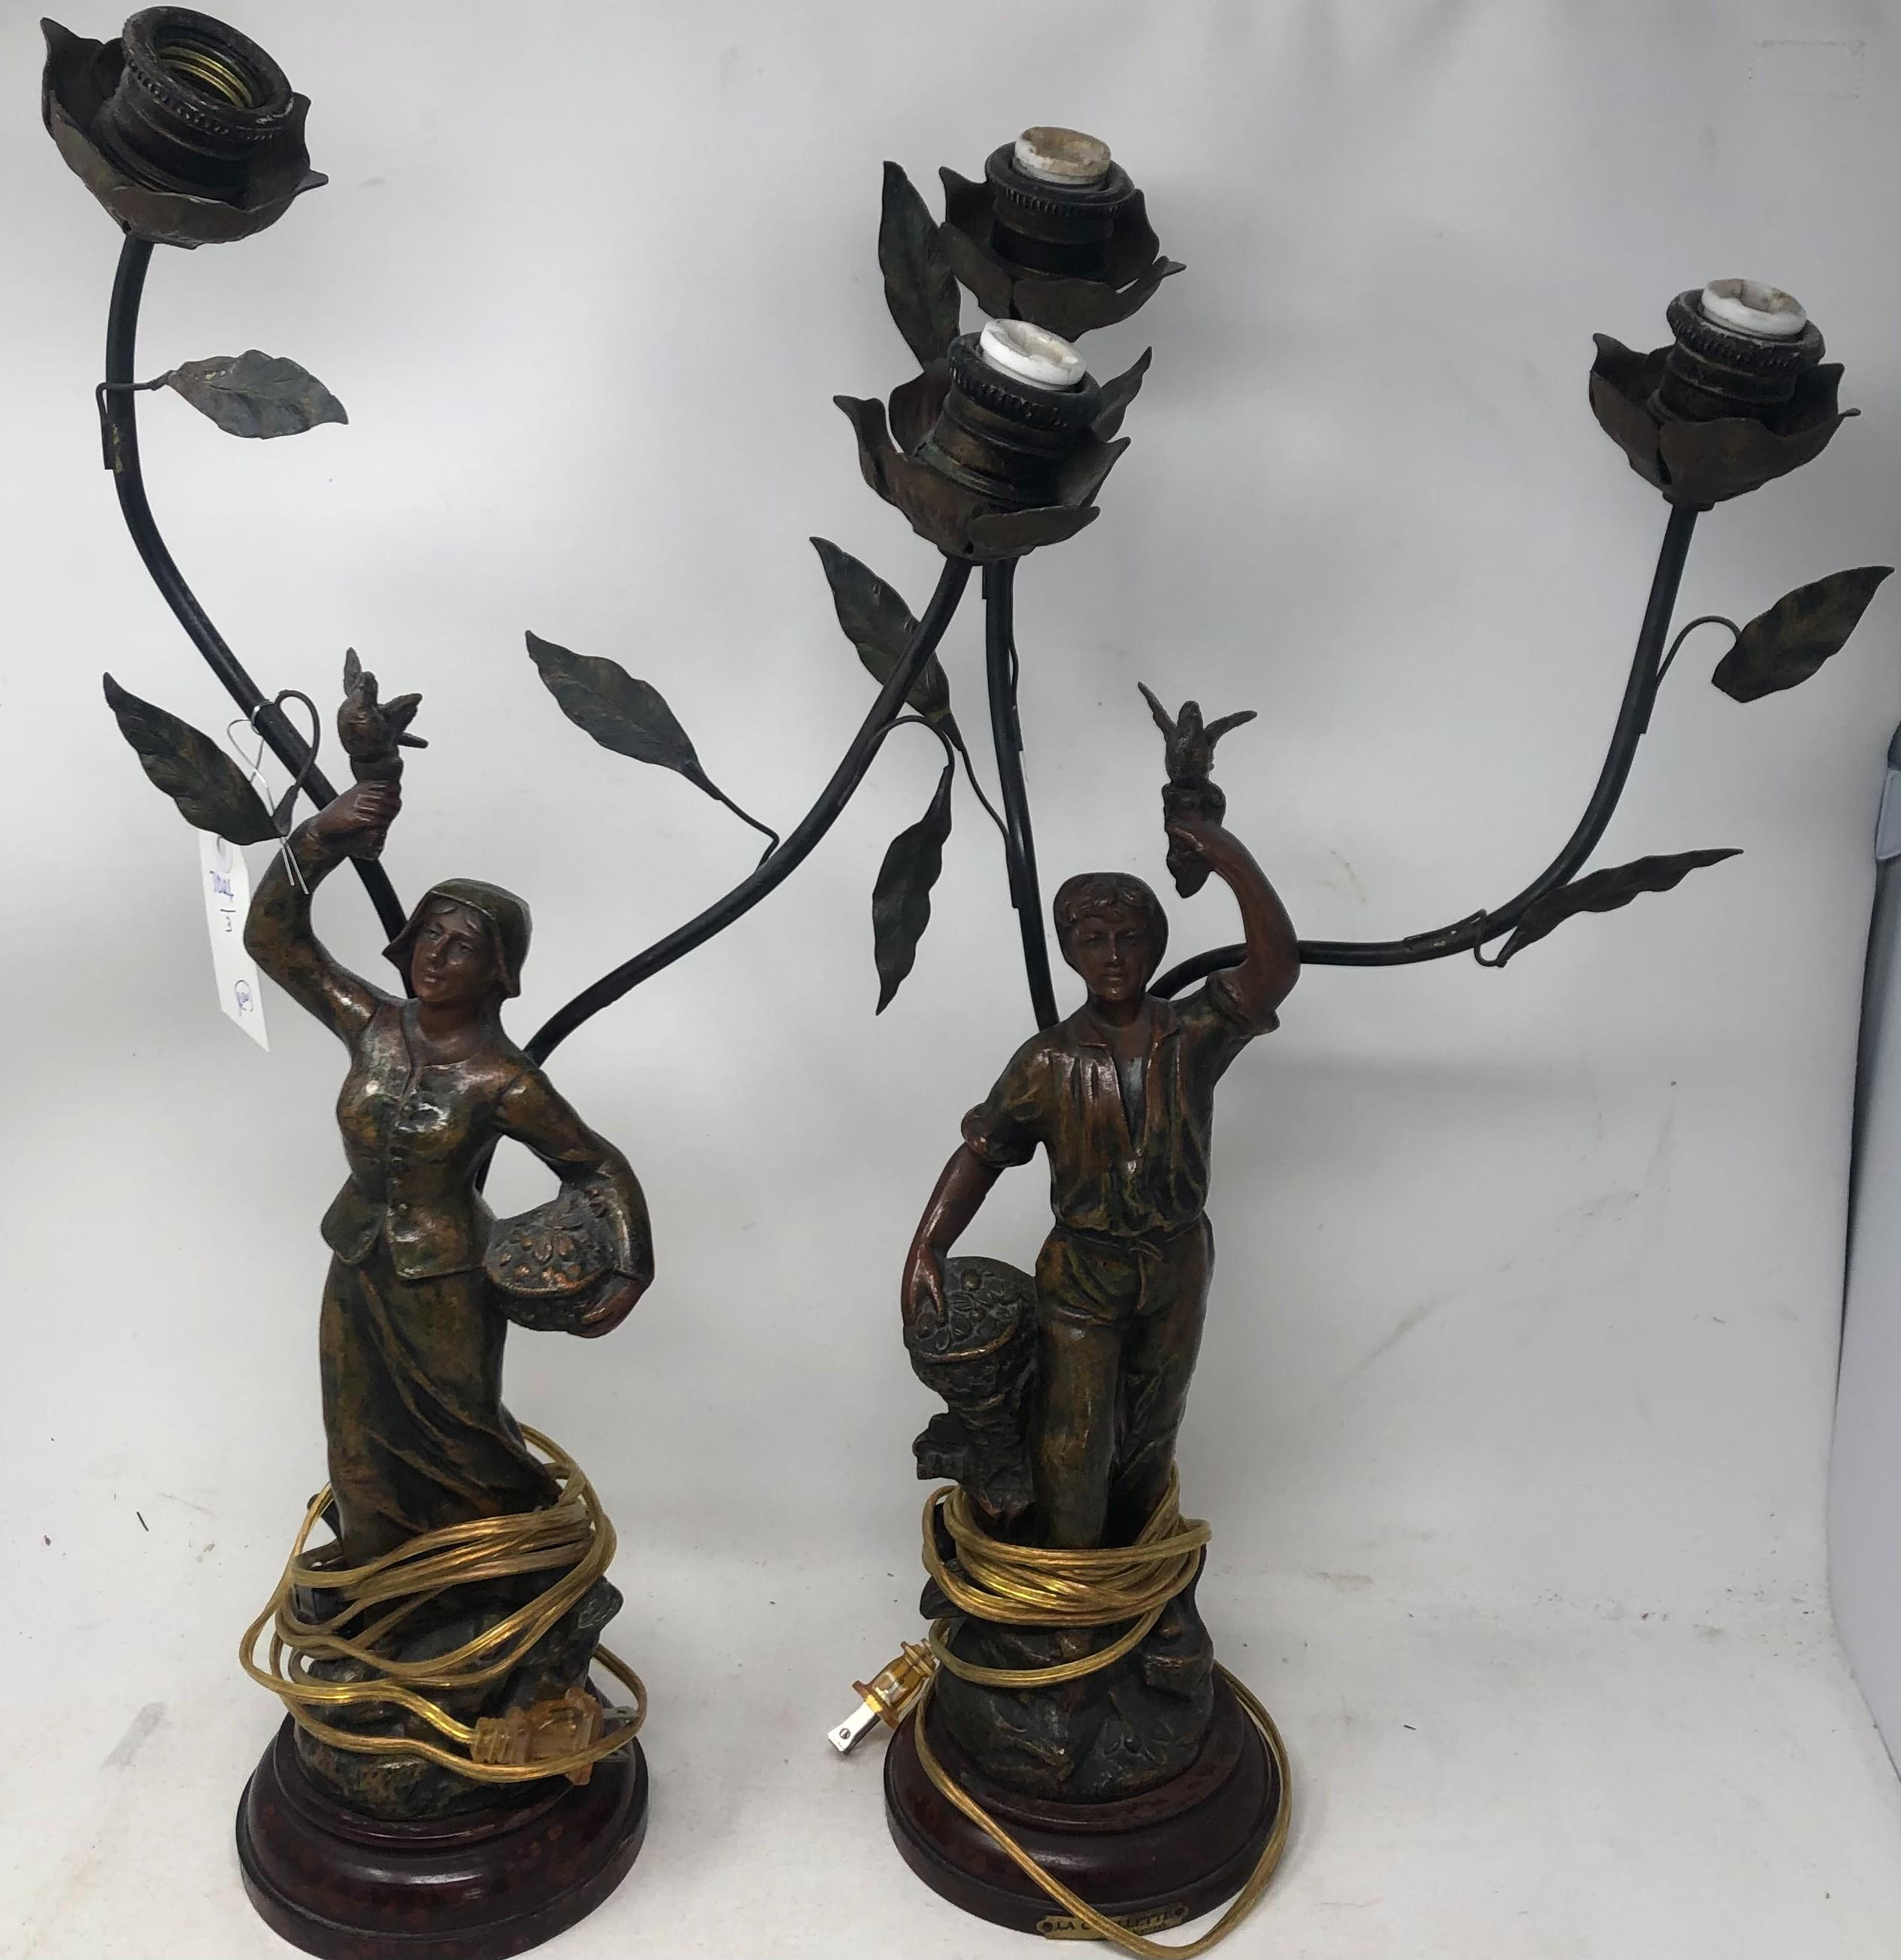 Pair of Art Nouveau style metal table lamps featuring a man and woman, each holding a bird.